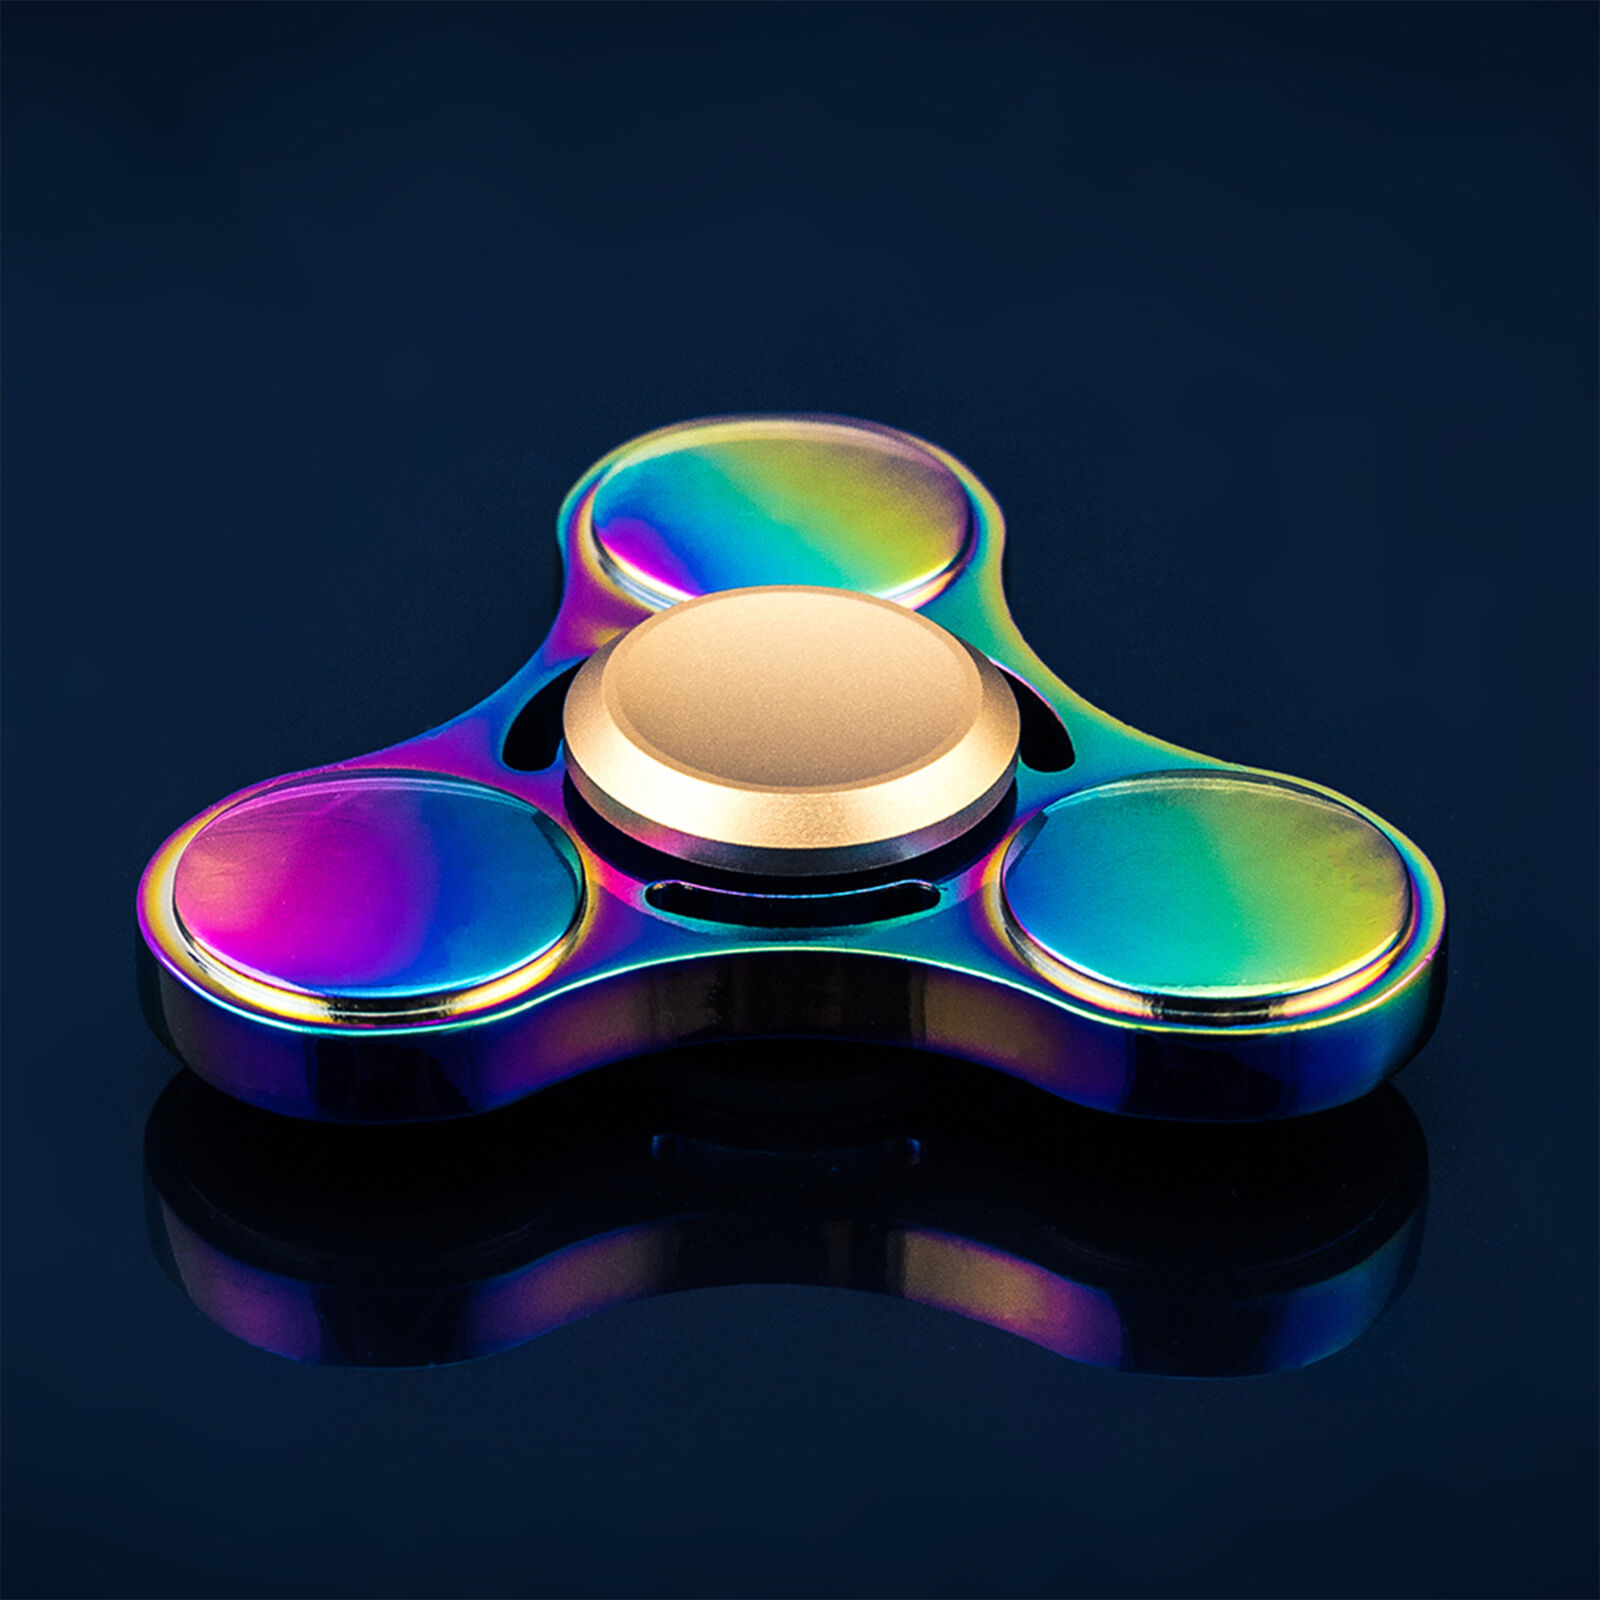 Round Rainbow Fidget Spinner Toy for Focus and Stress Reduction Multiple QTY